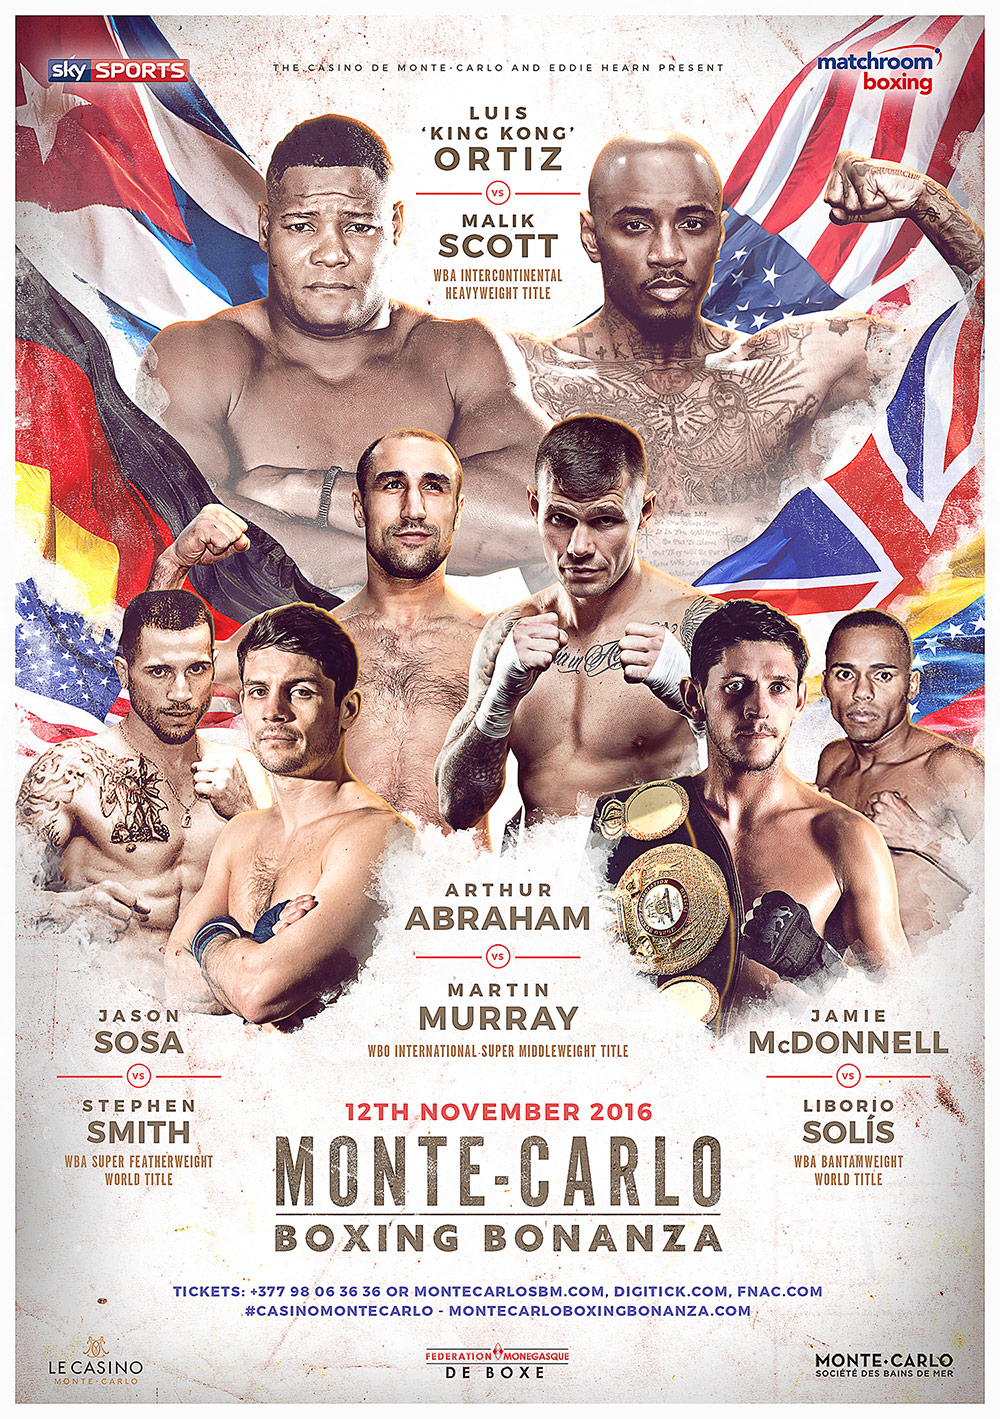 poster for monte carlo boxing bonanza